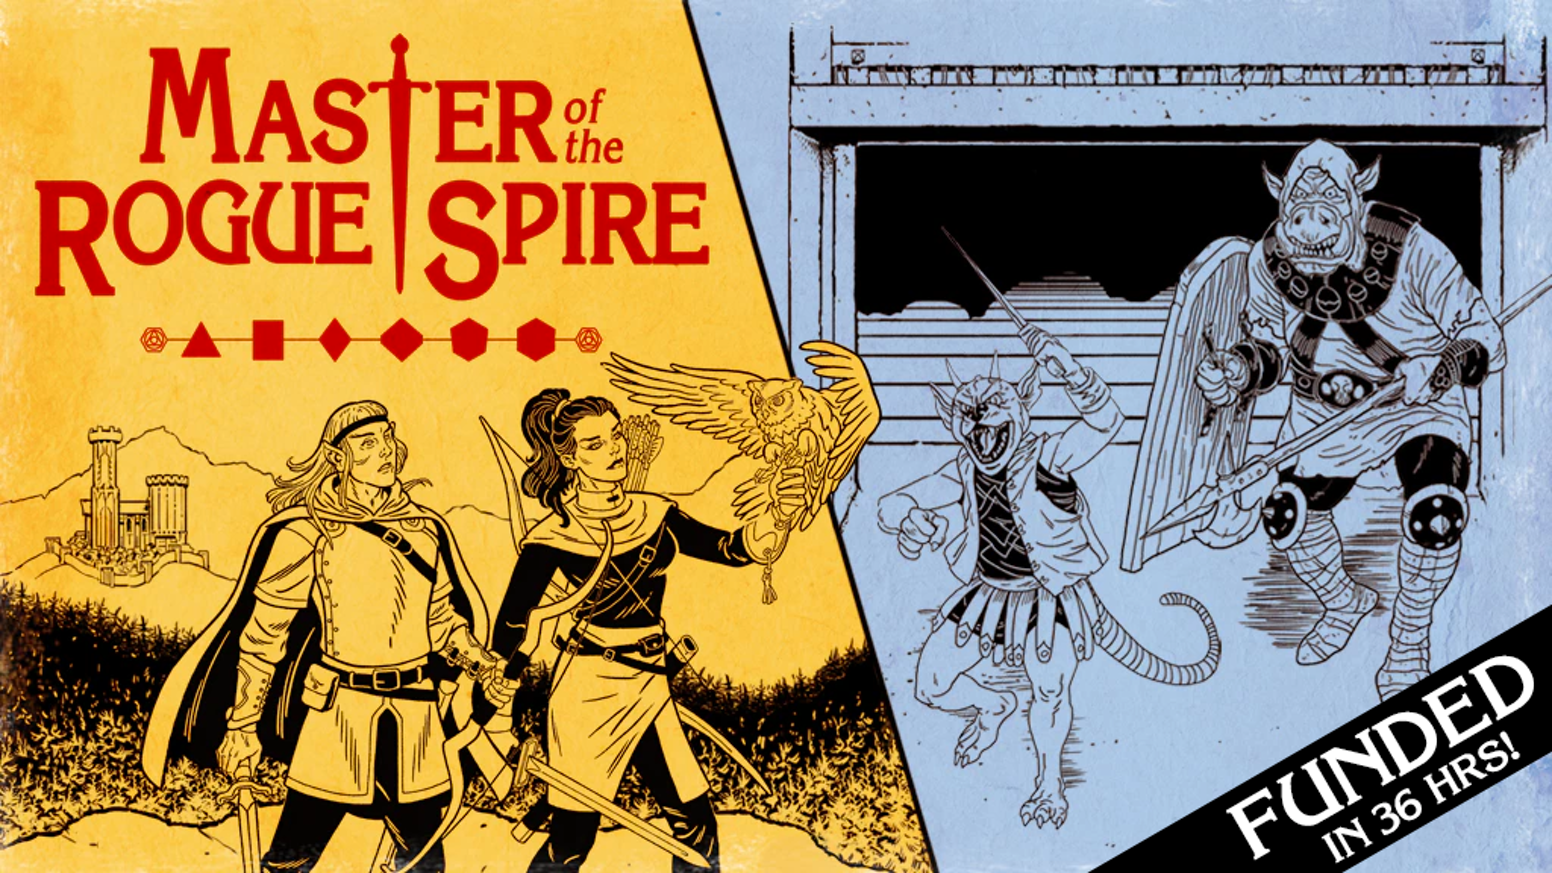 Tabletop roleplaying game rulebook zines with pulp storytelling, tactical combat, and classic fantasy art in English and Japanese.